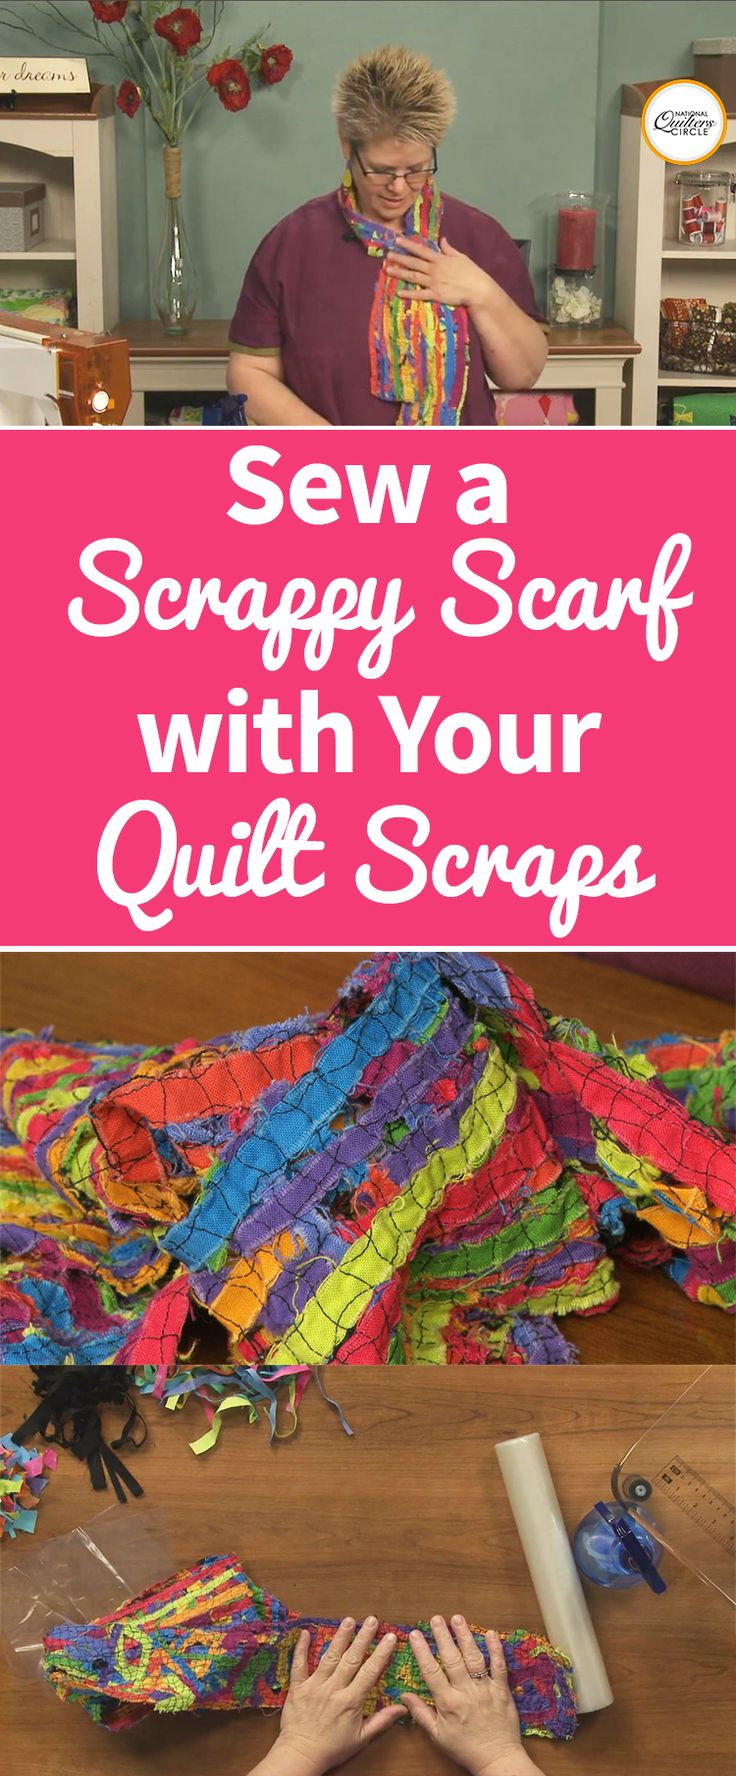 A scrappy scarf is not only a great way to use up small leftover pieces of fabric, but it makes for a great accessory too. Heather Thomas shows you how to make a scrappy scarf by stitching together layers of fabric bits sandwiched between stabilizer.